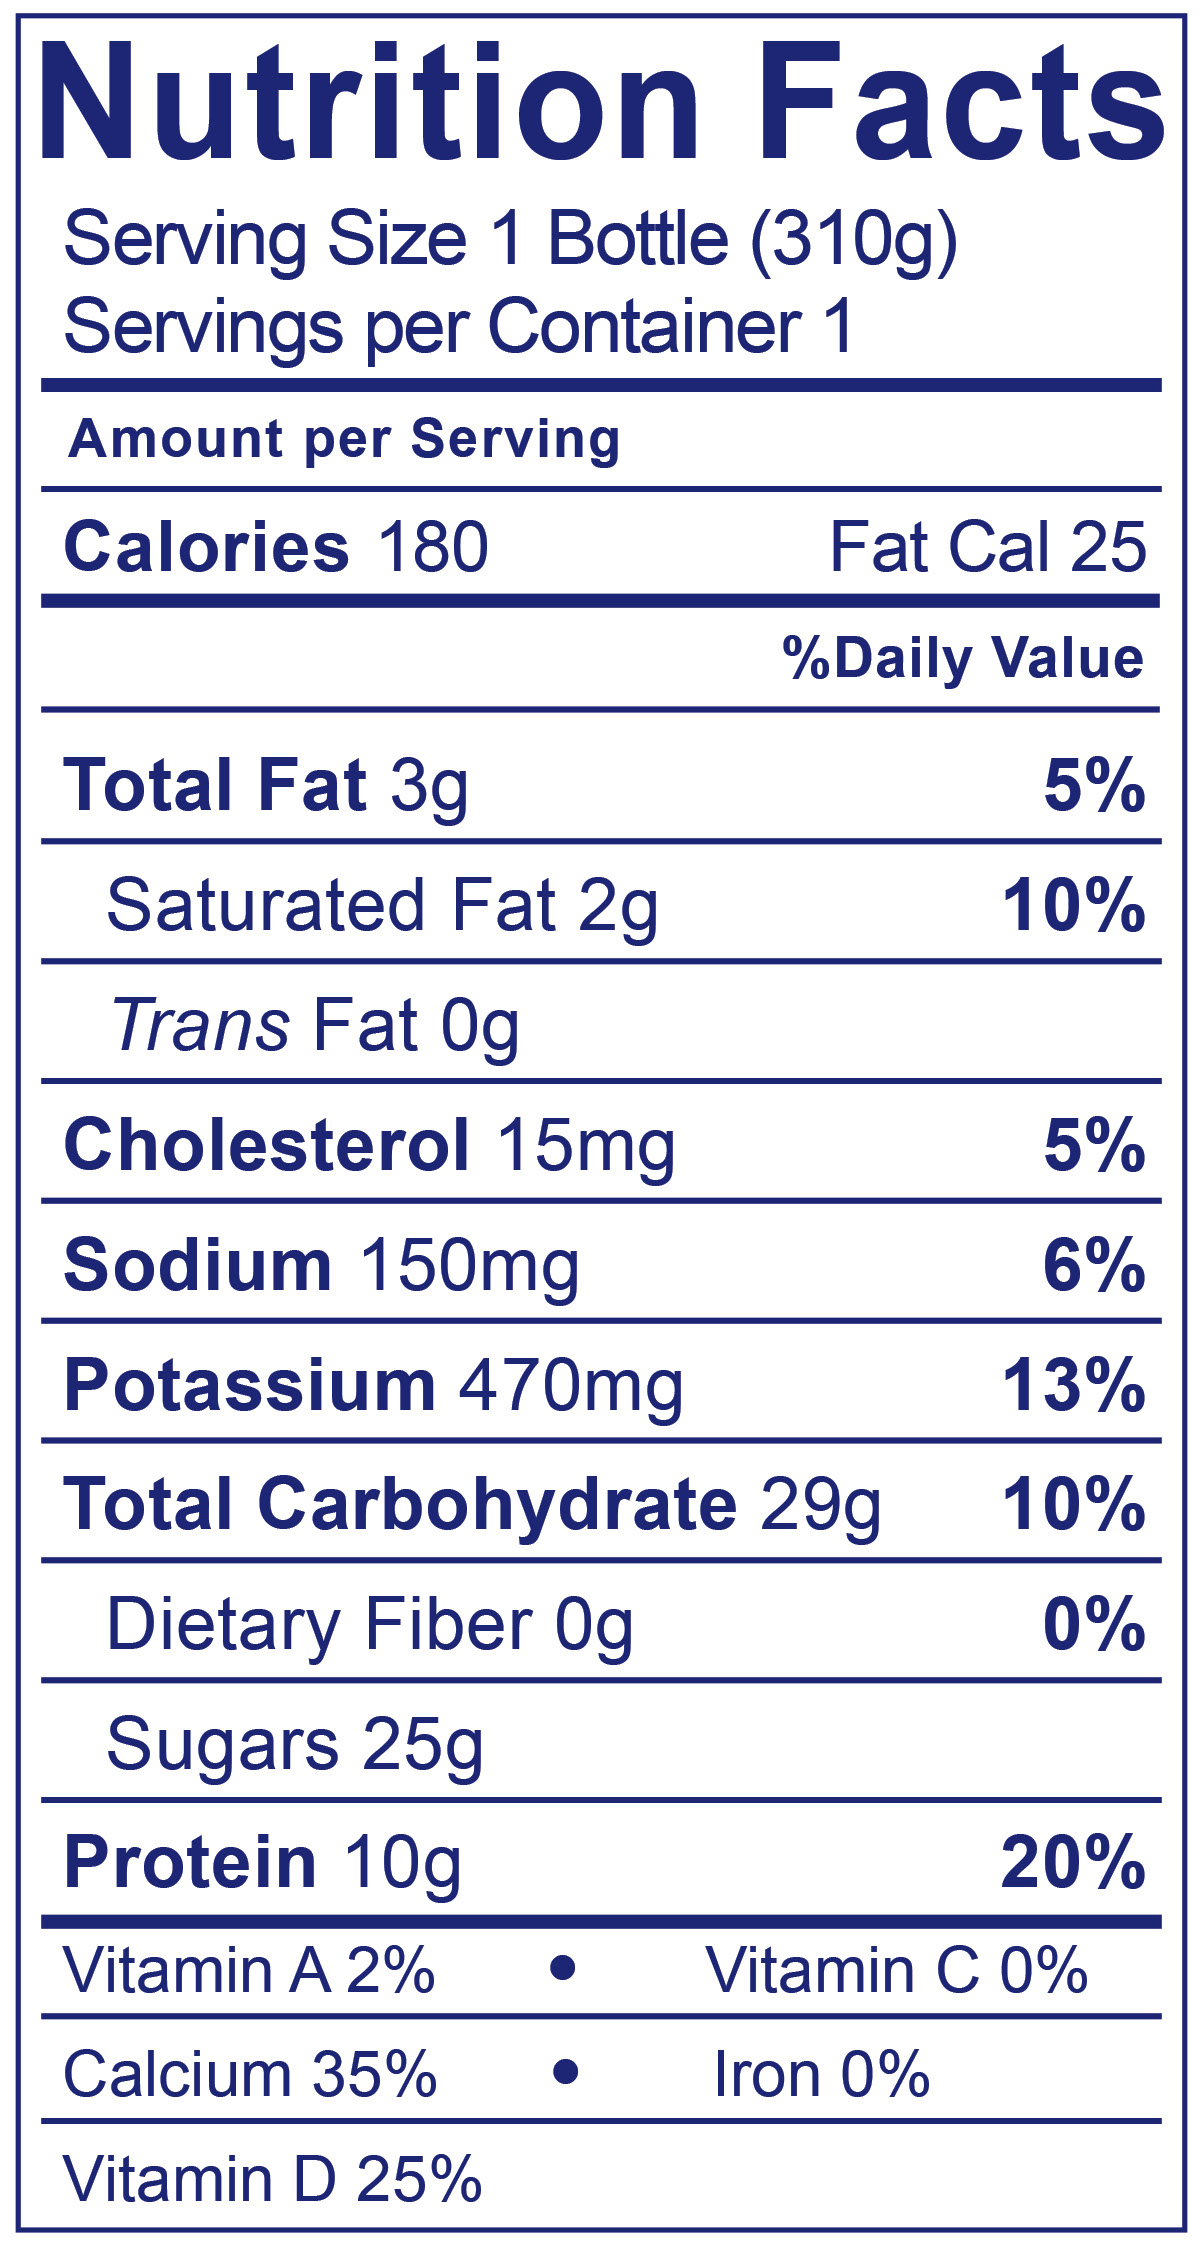 Low Fat Strawberry Smoothies - Nutrition Facts